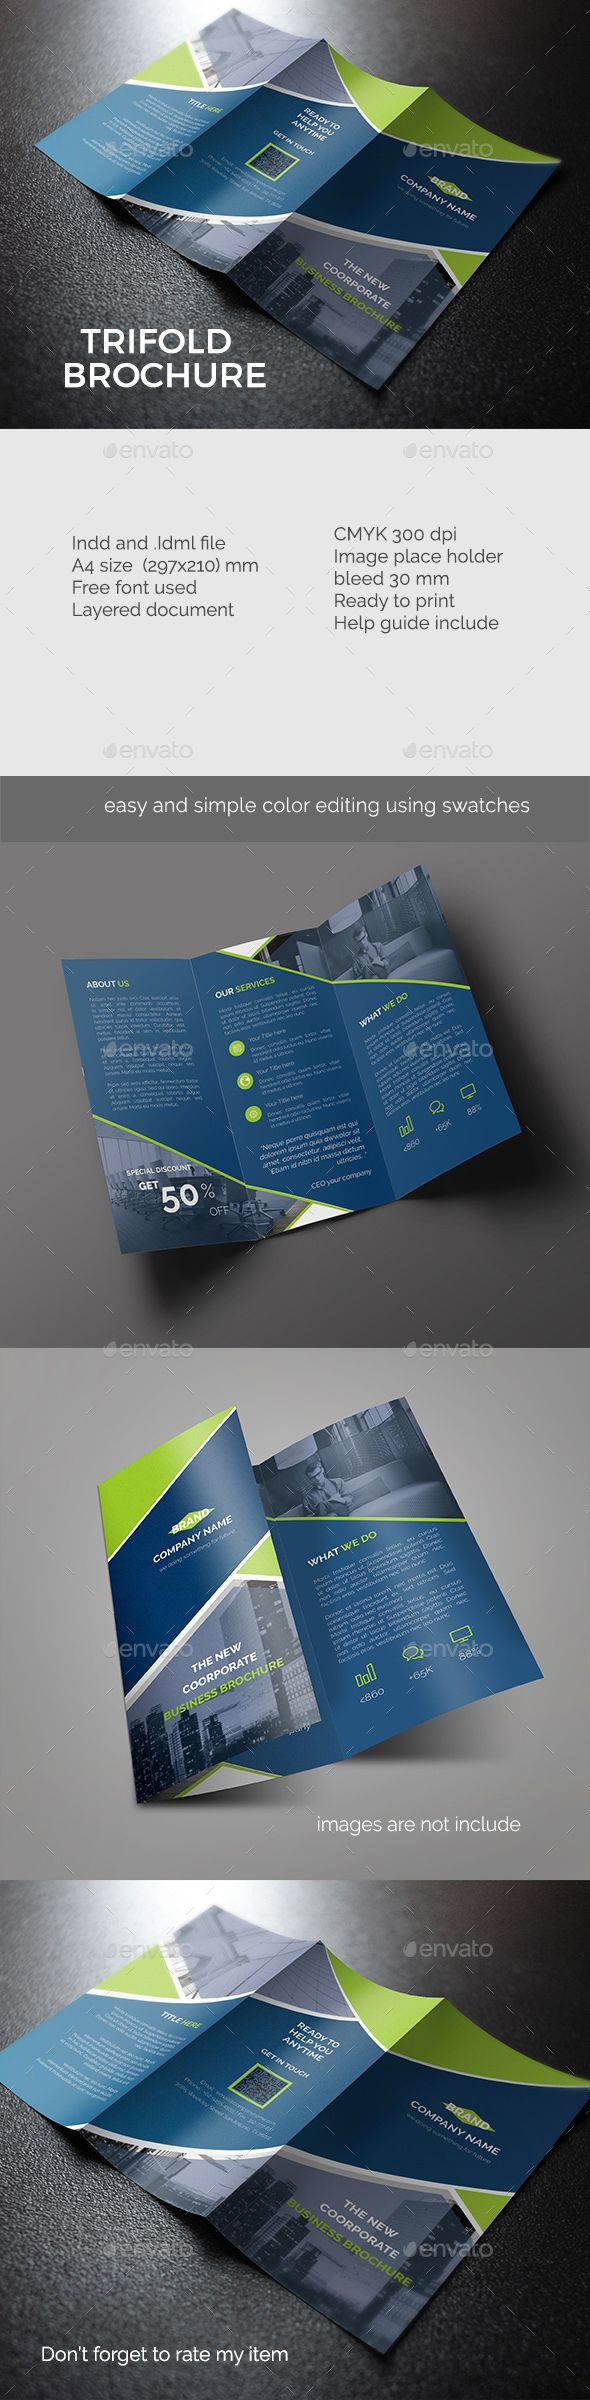 Creative Trifold Brochure Template InDesign INDD. Download here ...